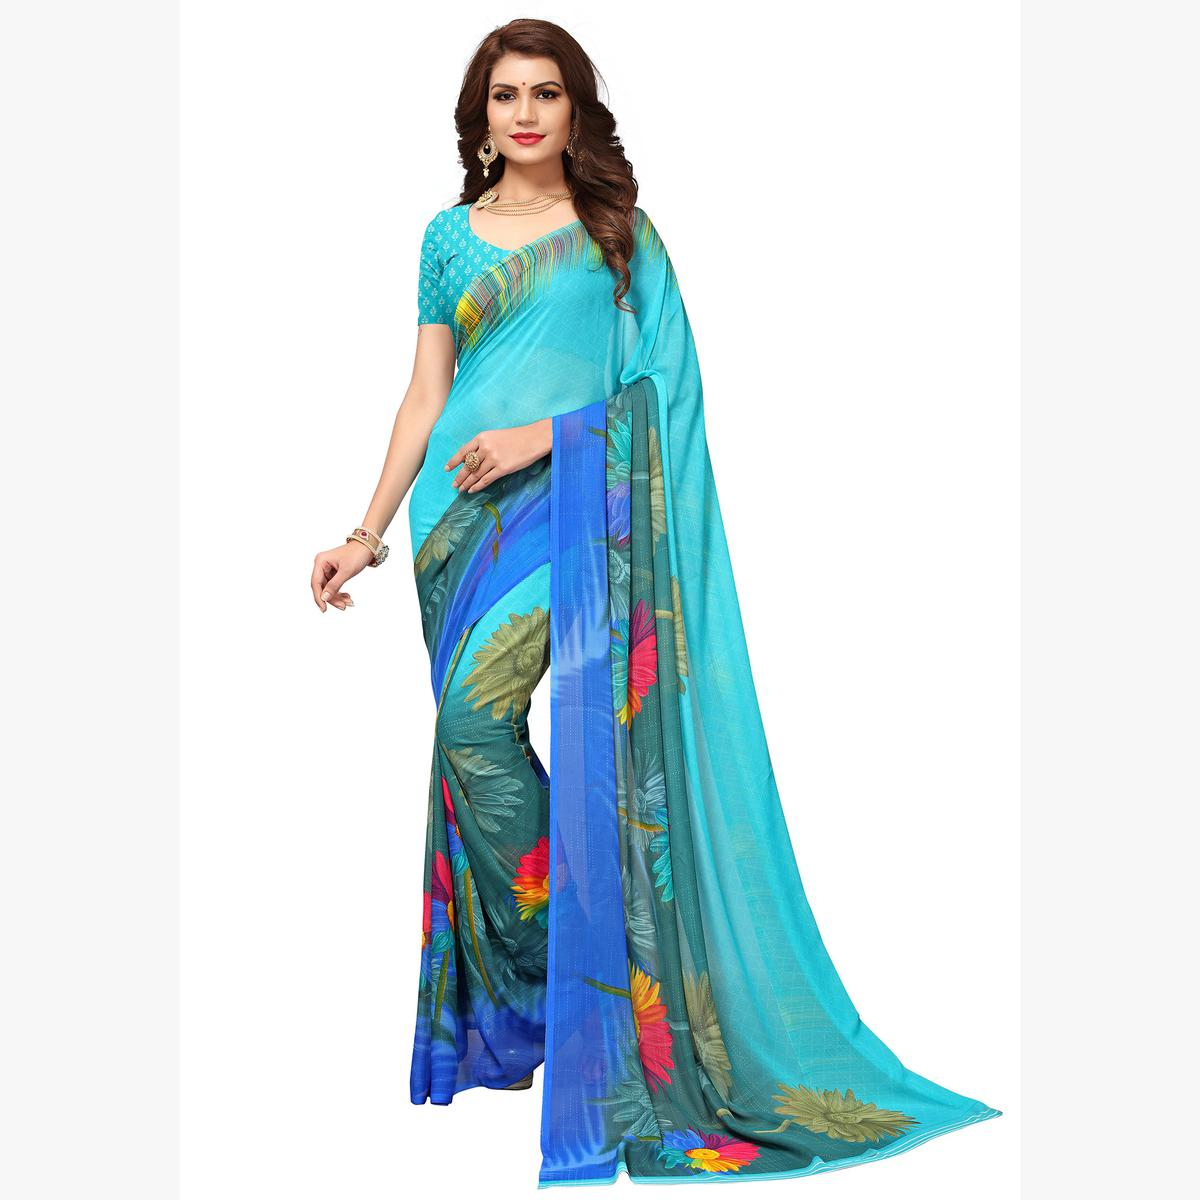 Ravishing Sky Blue Colored Casual Printed Georgette Saree